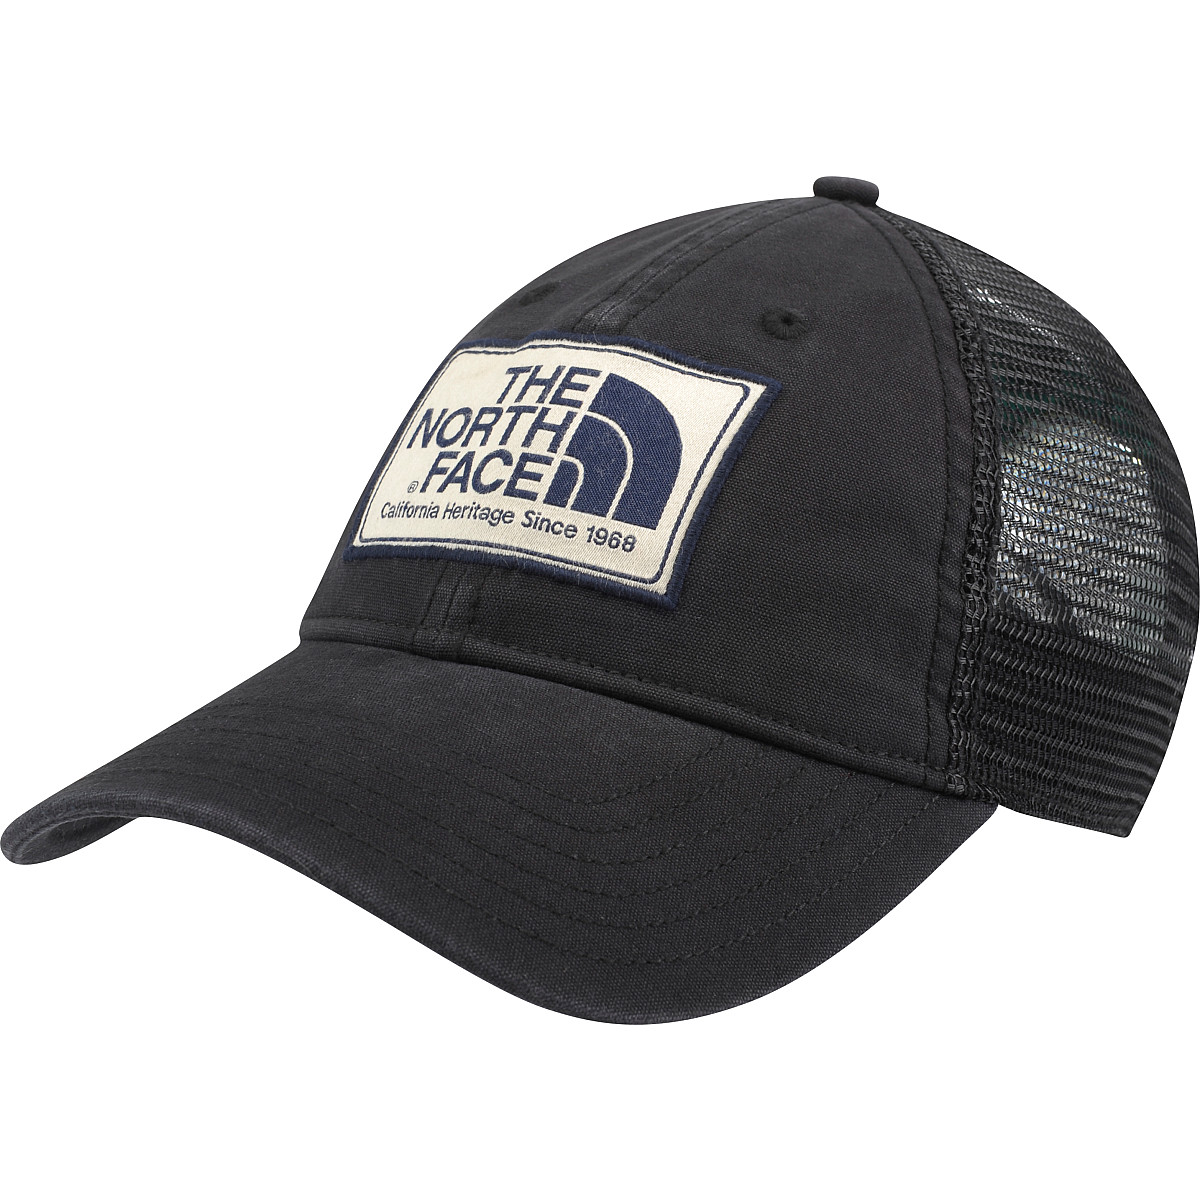 The north face mudder trucker hat from sports authority